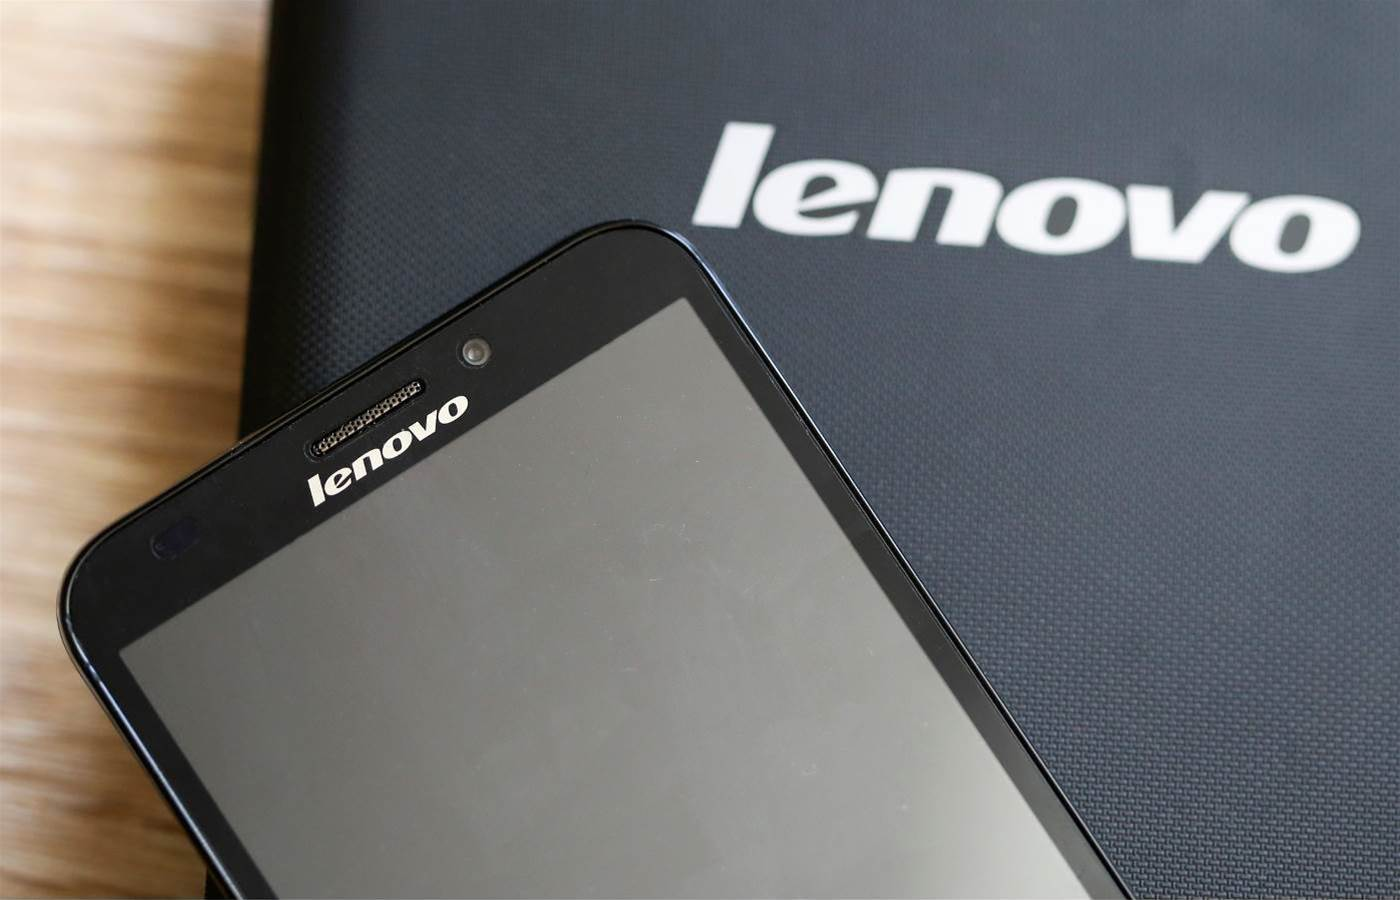 Lenovo adds new PC incentives for partners